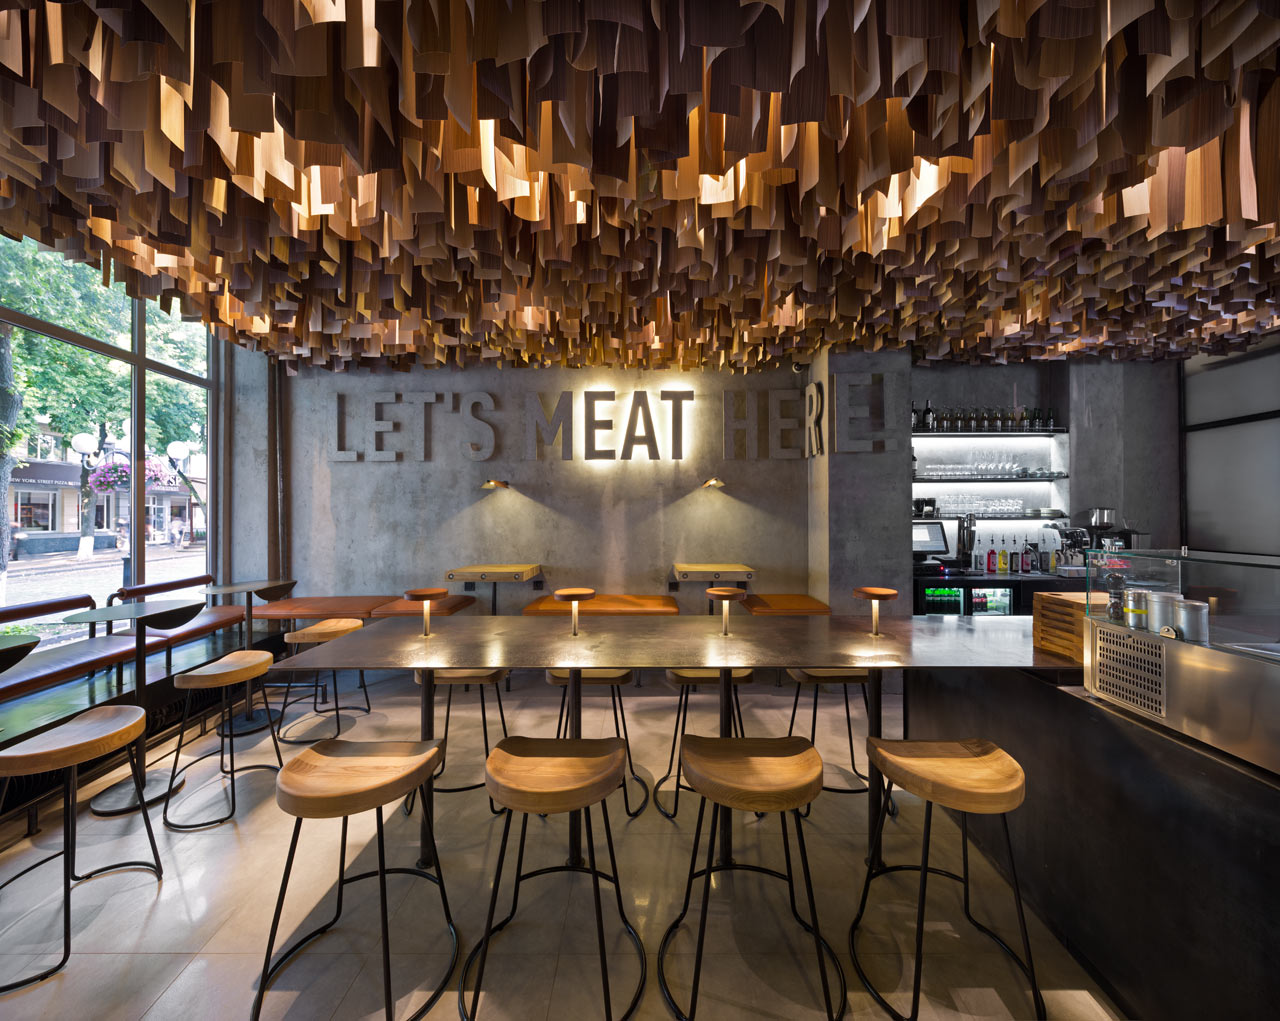 Restaurant Furniture Design A Modern Burger Joint In Poltava Ukraine  Design Milk